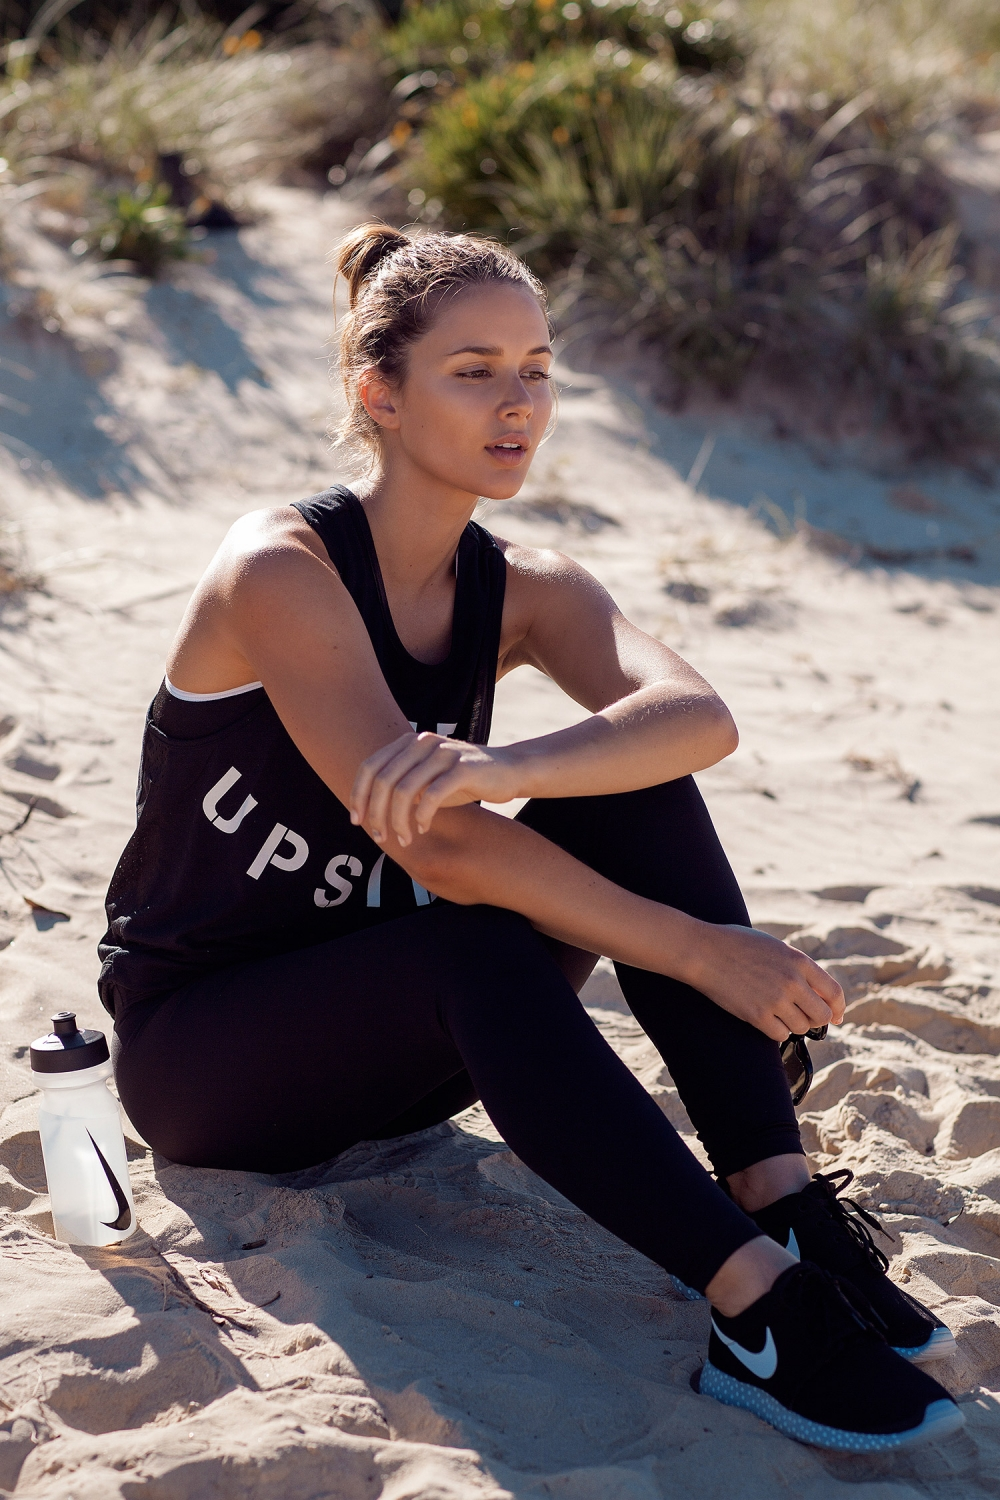 Harper-and-harley_activewear_health_nike_the-upside_all-black_outfit_3